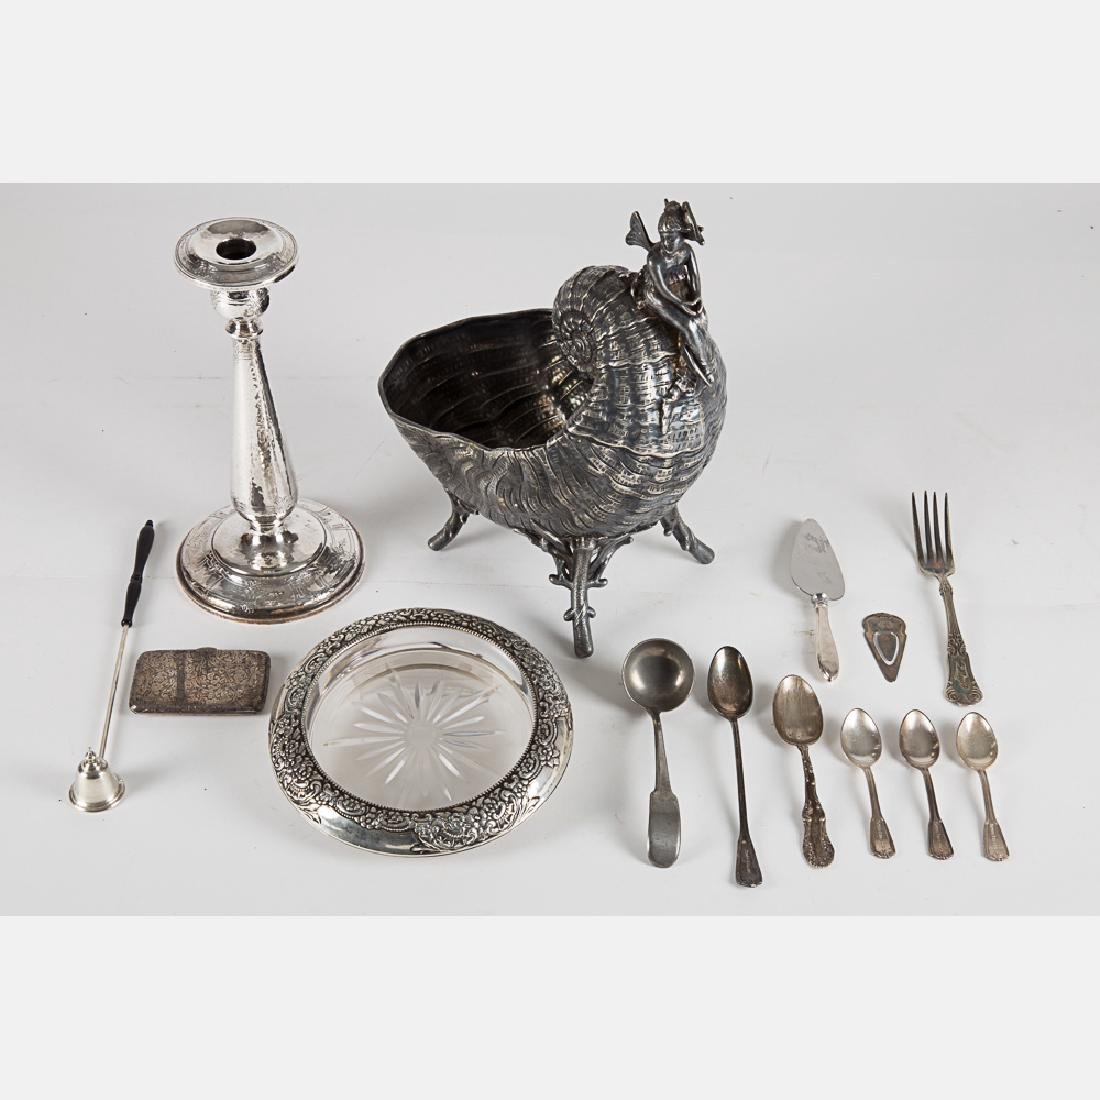 A Miscellaneous Collection of Sterling Silver, Silver - 2